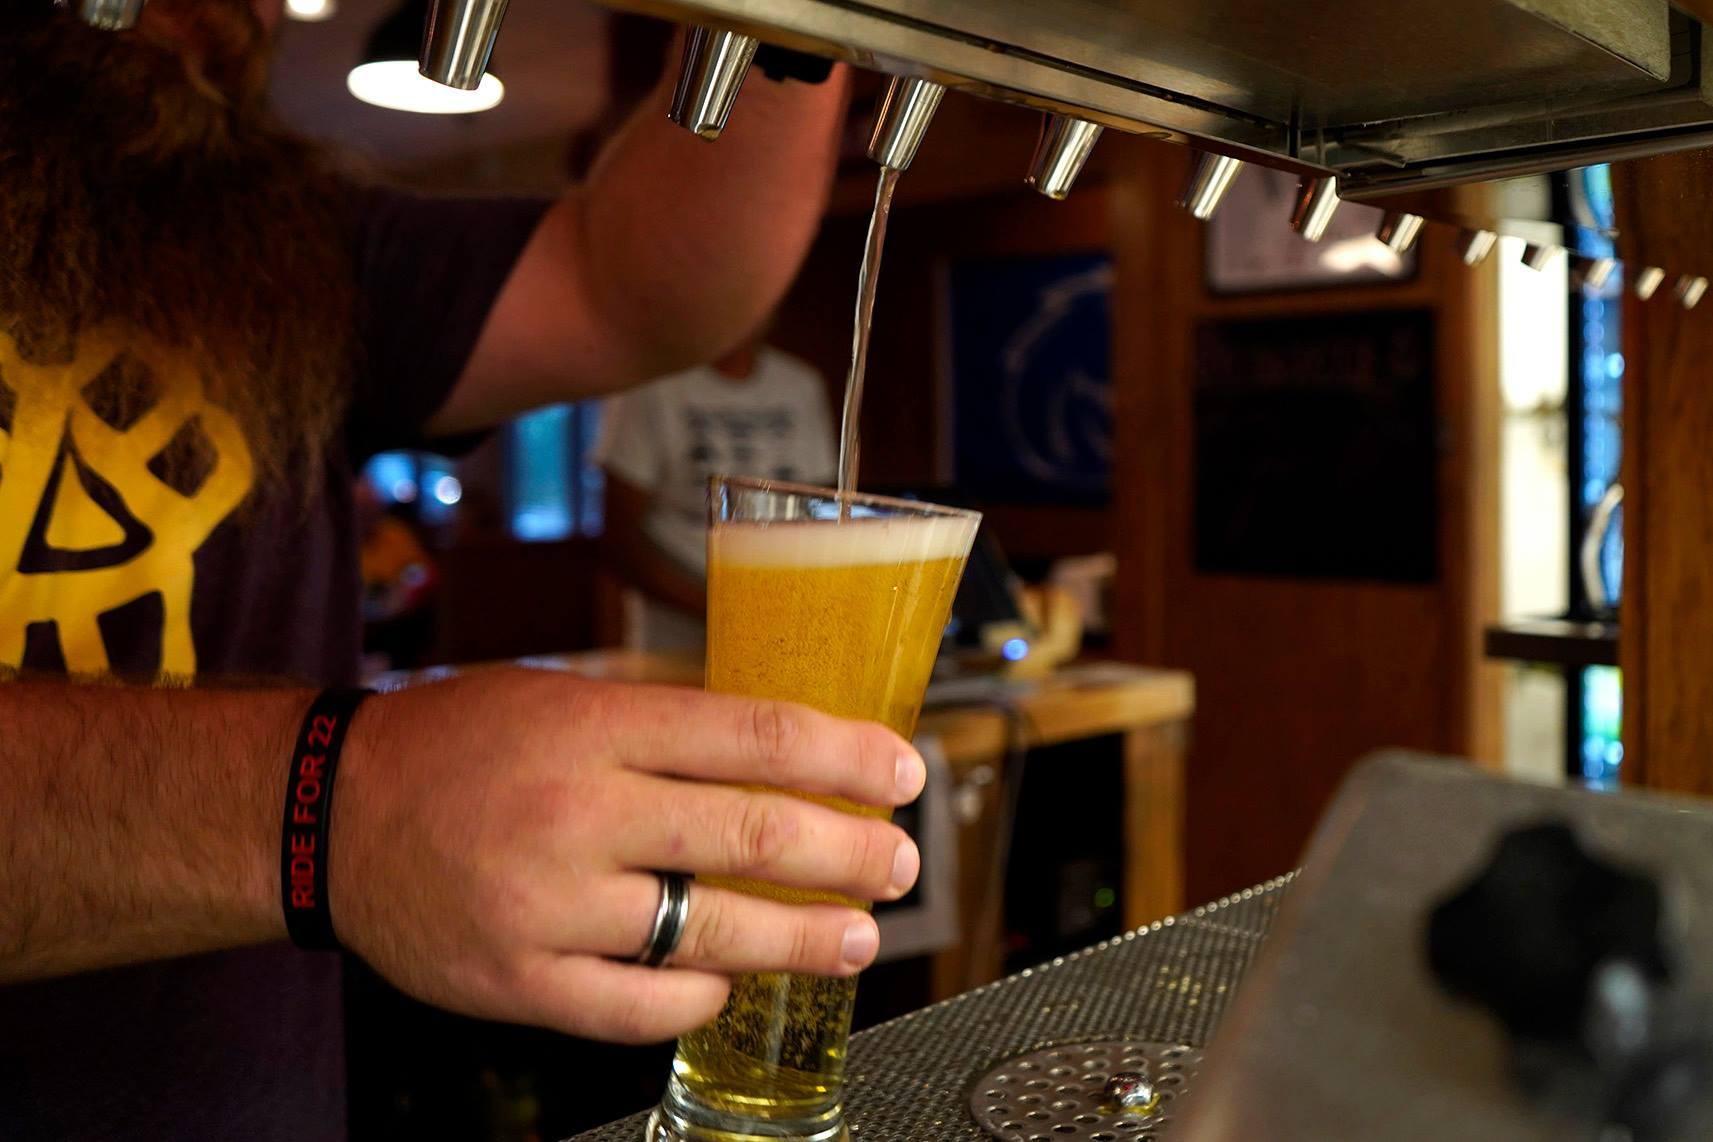 bartender pouring a light beer from the tap into a glass.